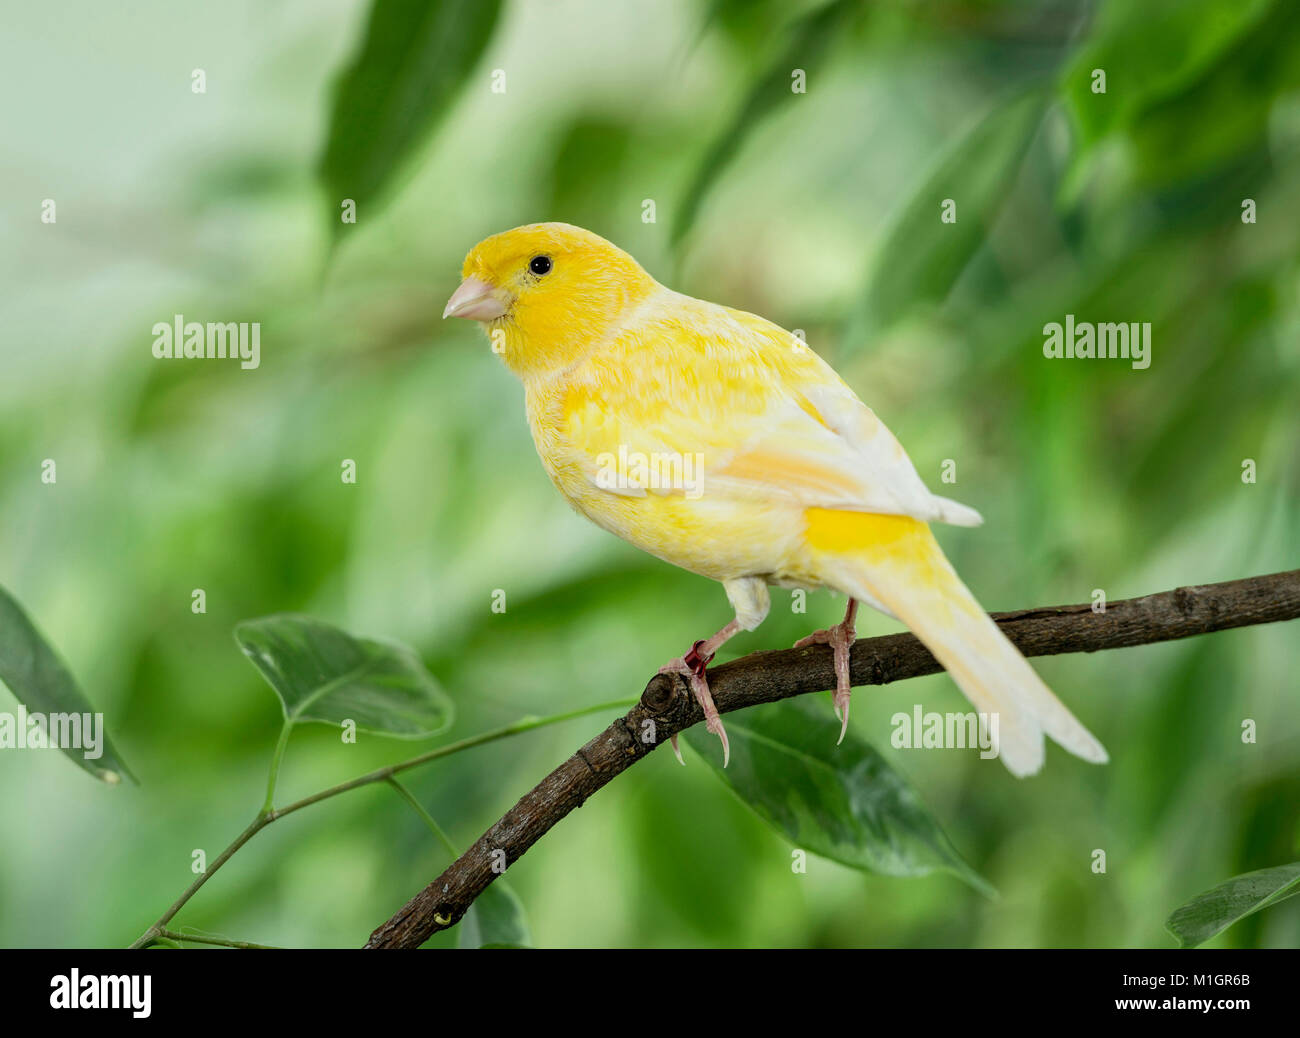 Domestic Canary. Yellow bird perched on a Benjamin Fig twig. Germany. - Stock Image